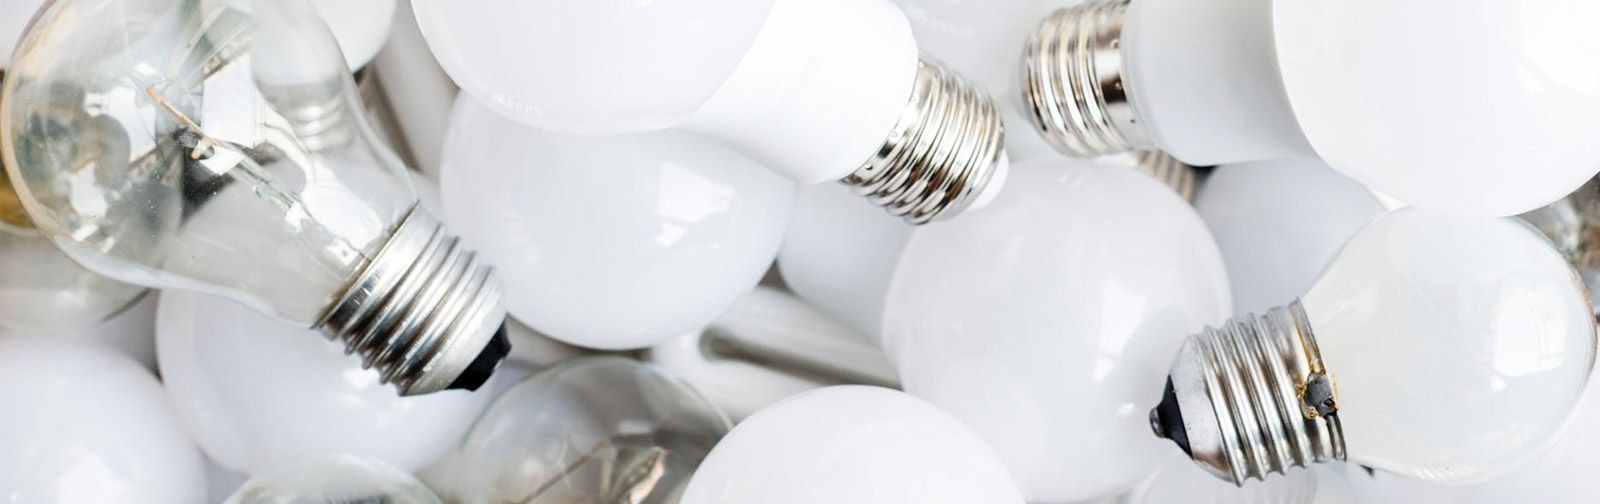 led light bulbs mixed with conventional light bulbs in pile